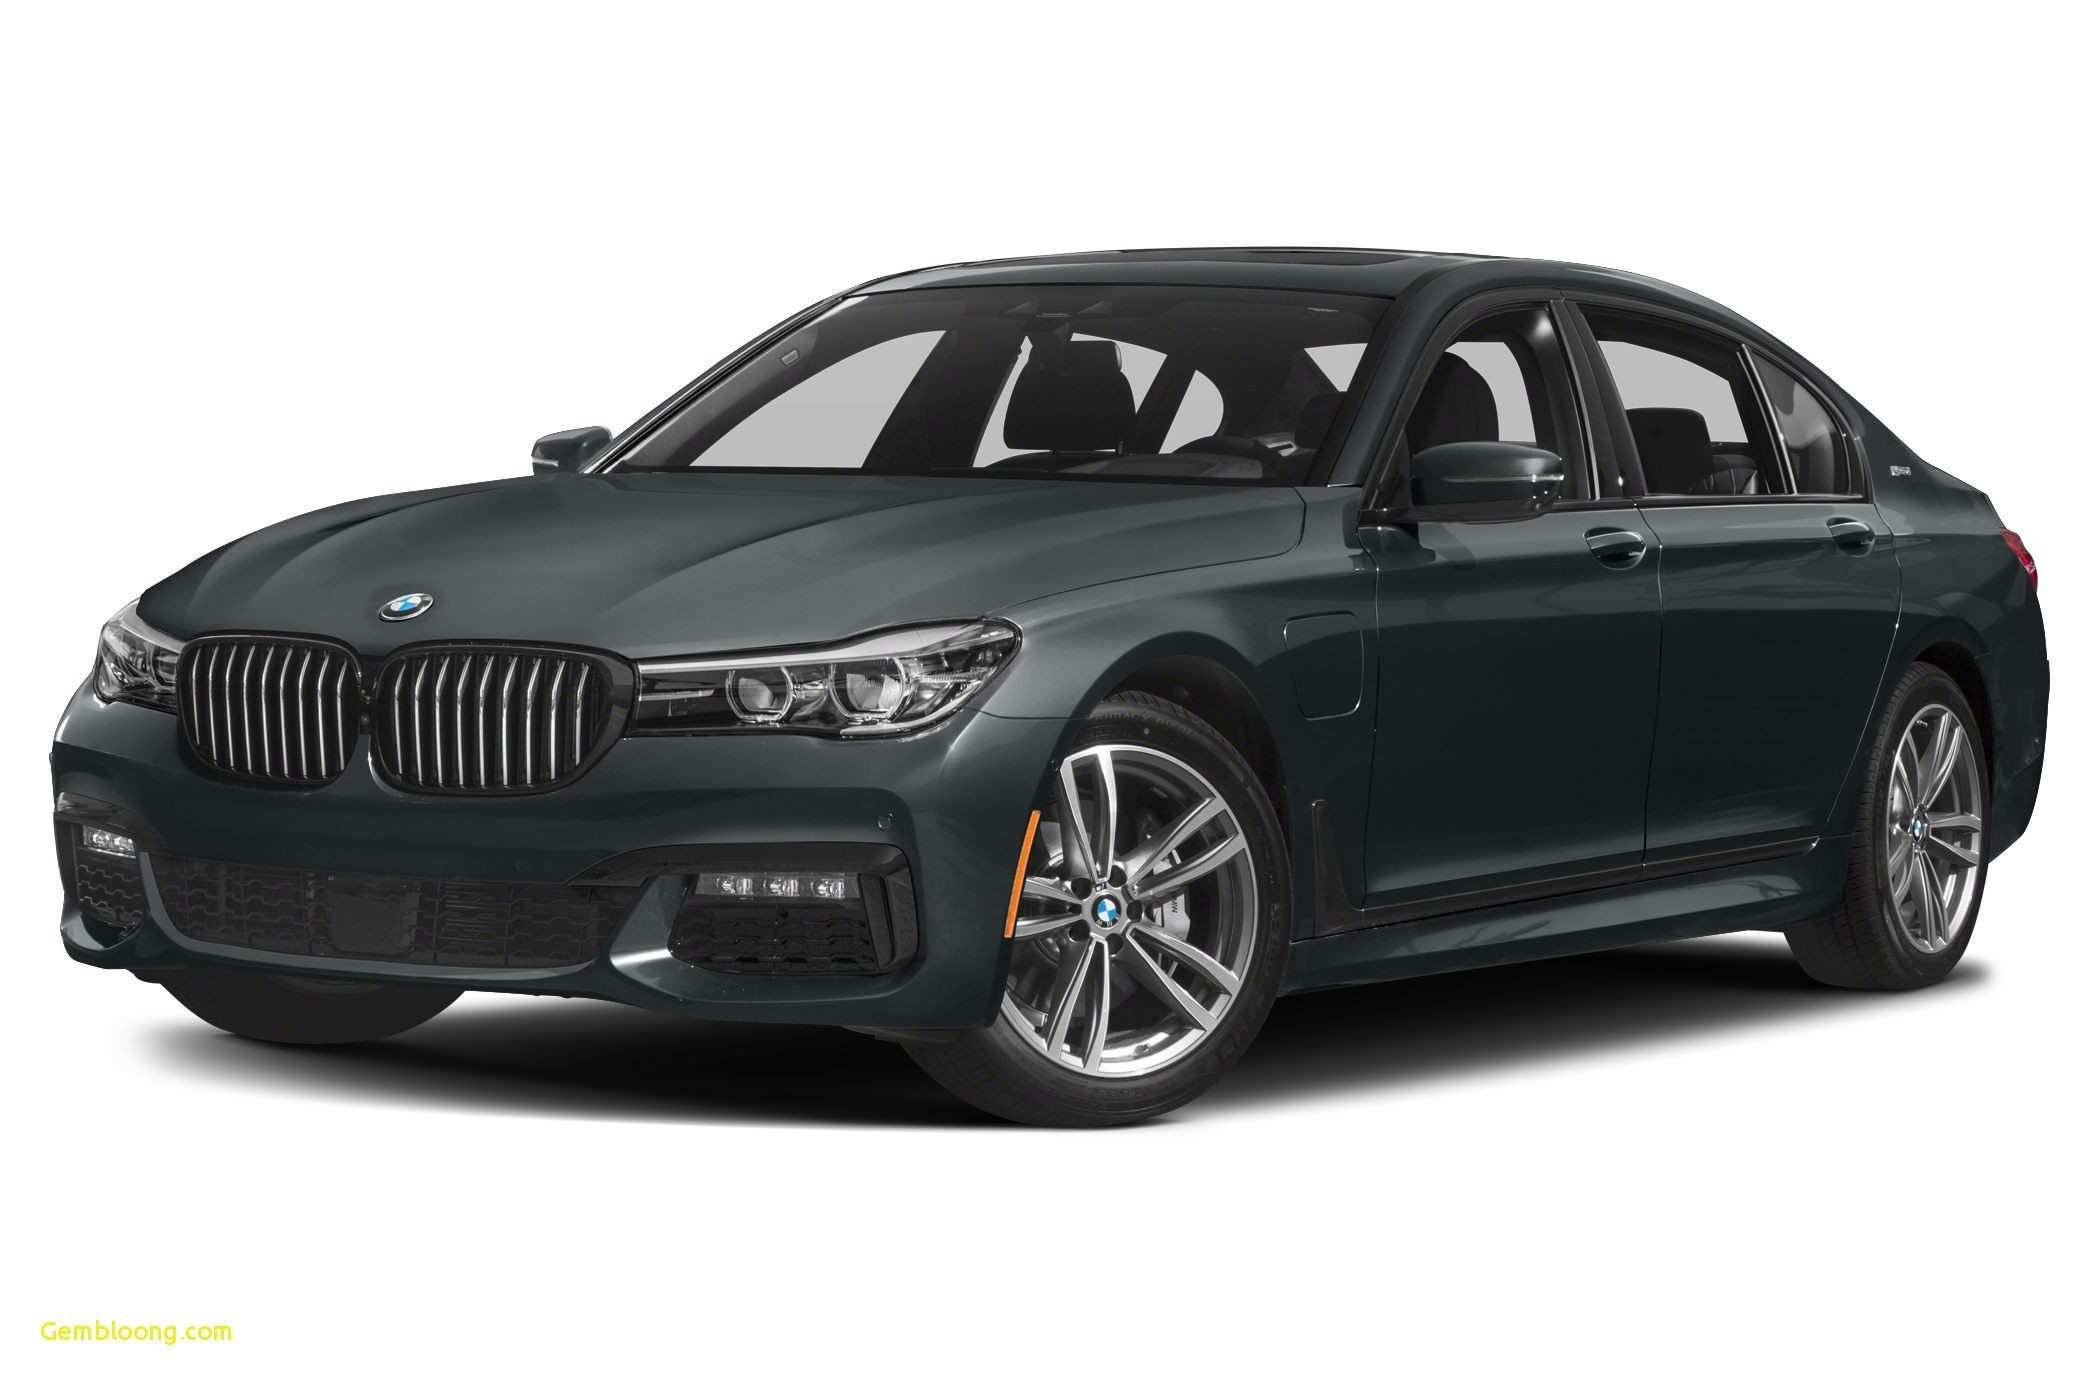 53 The Best 2019 BMW 7 Series Perfection New New Model And Performance